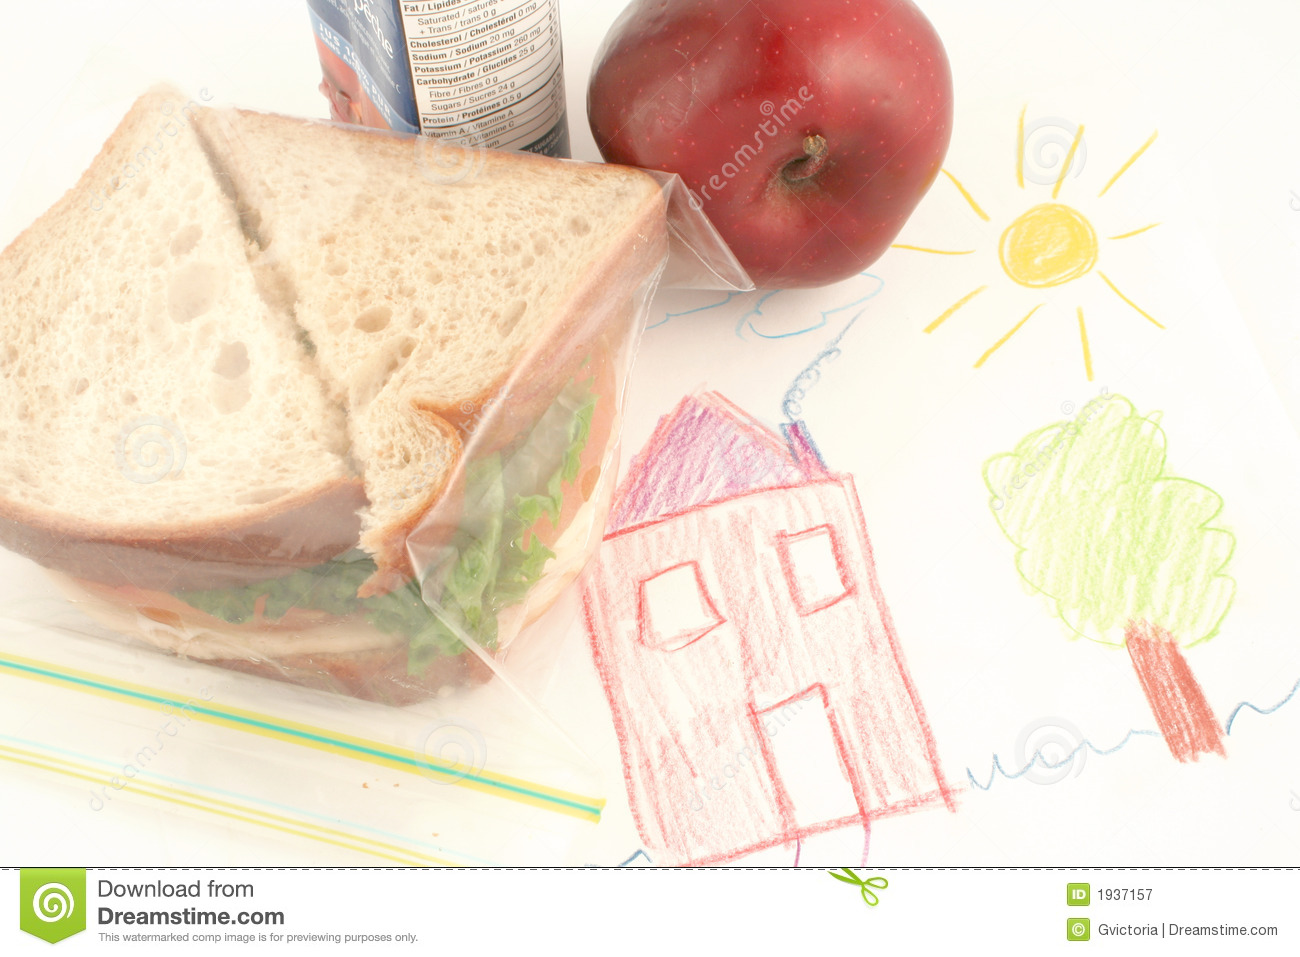 Boss B1400 Bk 1 together with 130 additionally Royalty Free Stock Photography School Lunch Image1937157 besides Sitting as well Inglesideisdips ss3 sharpschool. on medical office lunch room